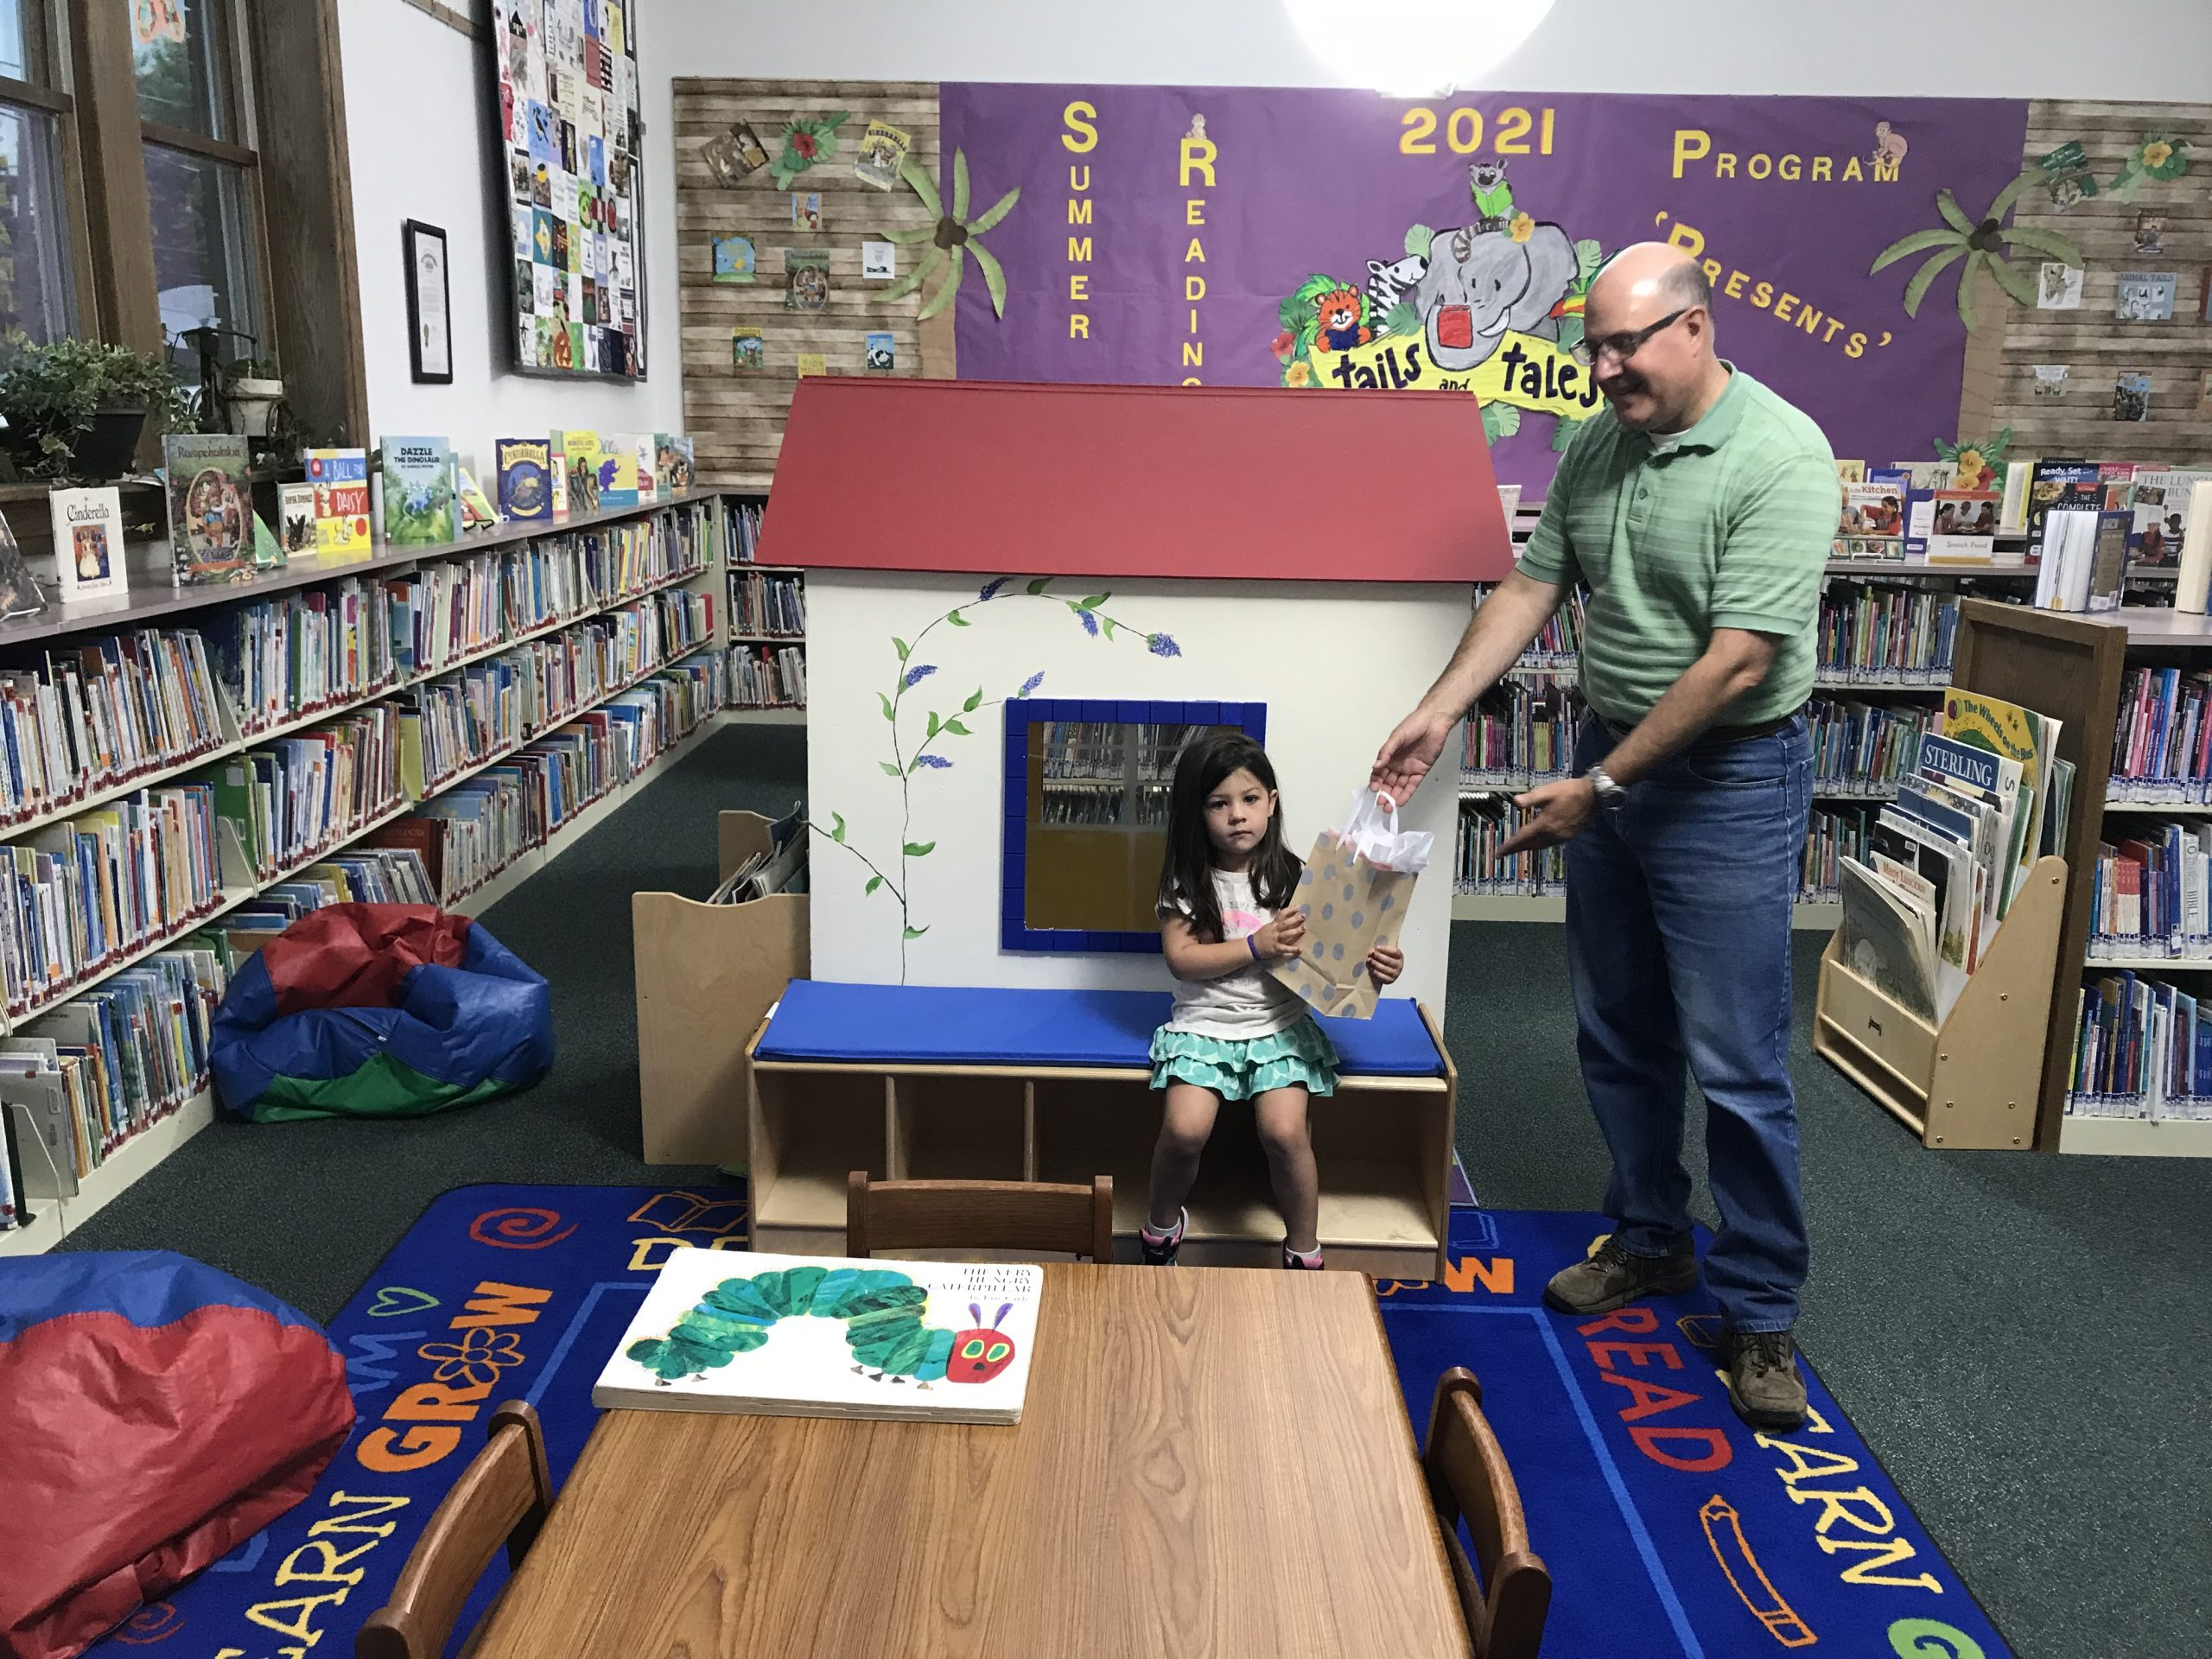 Norah Morris, age 3-12, was presented a Kid's Kindle & ear buds by library director Steve Brindza as a grand prize winner for her age group for our Summer Reading Program.